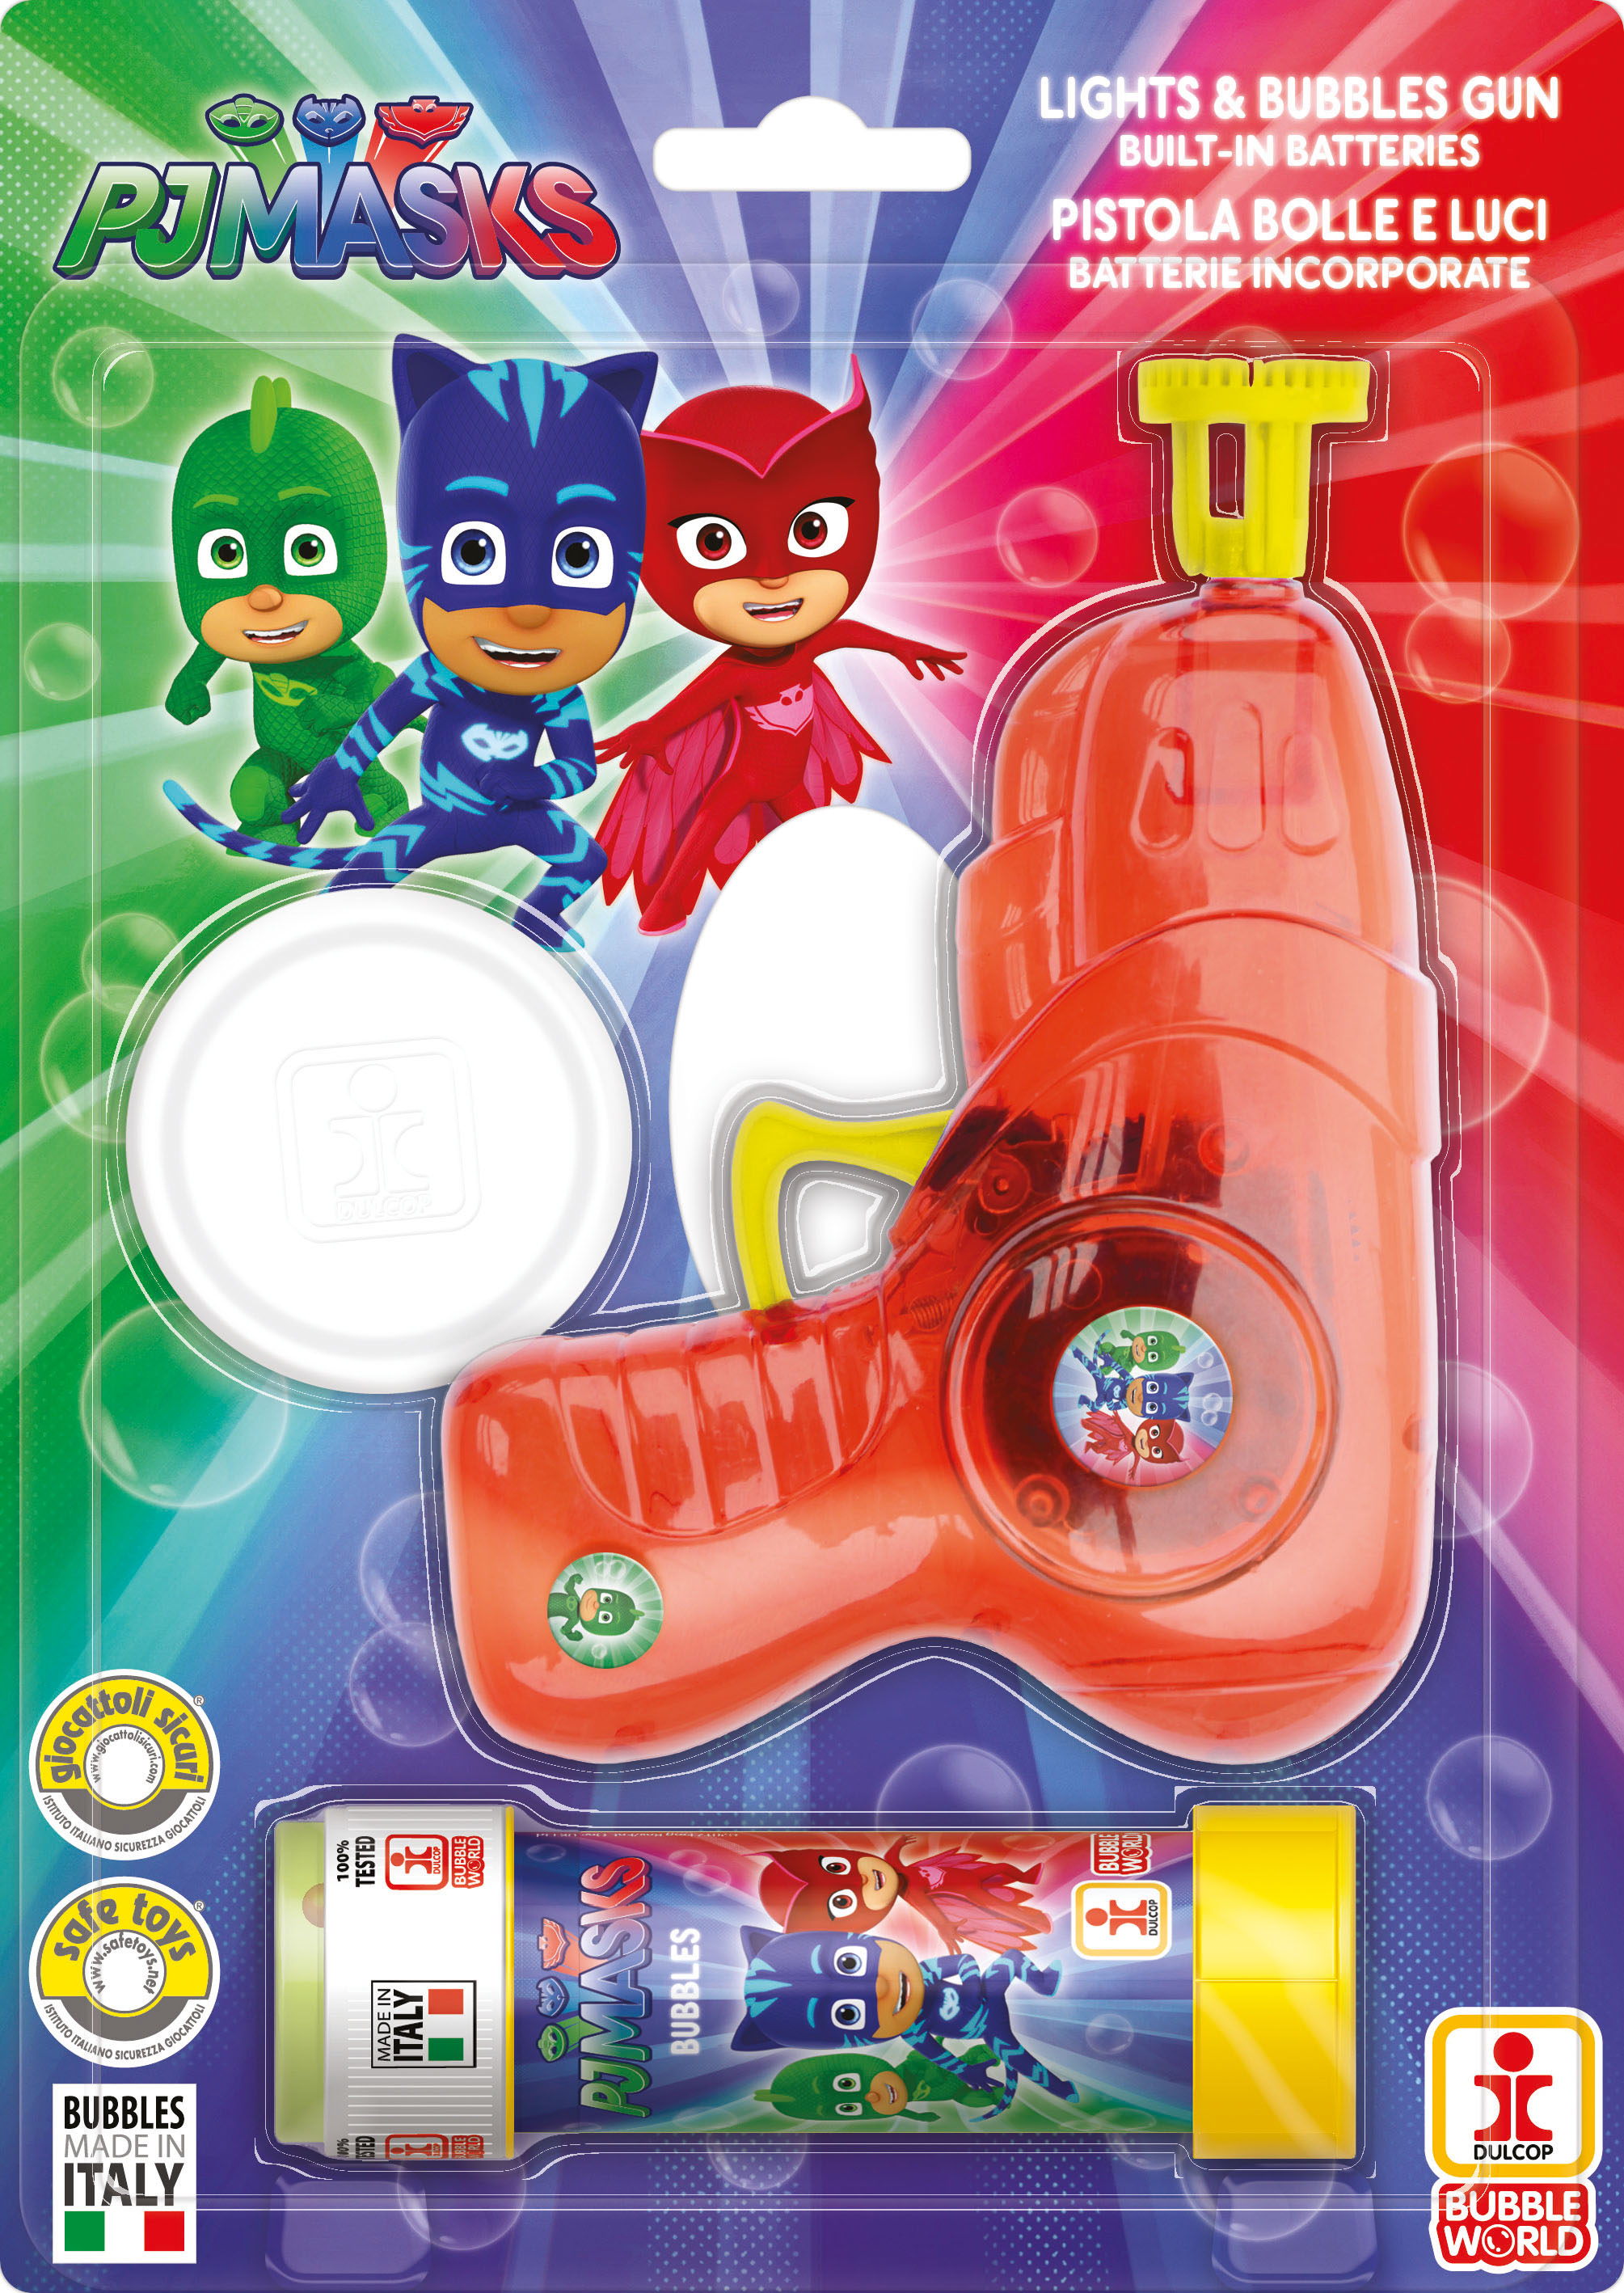 500210018-card-PJ-Masks-medium-Bubs-Gun17